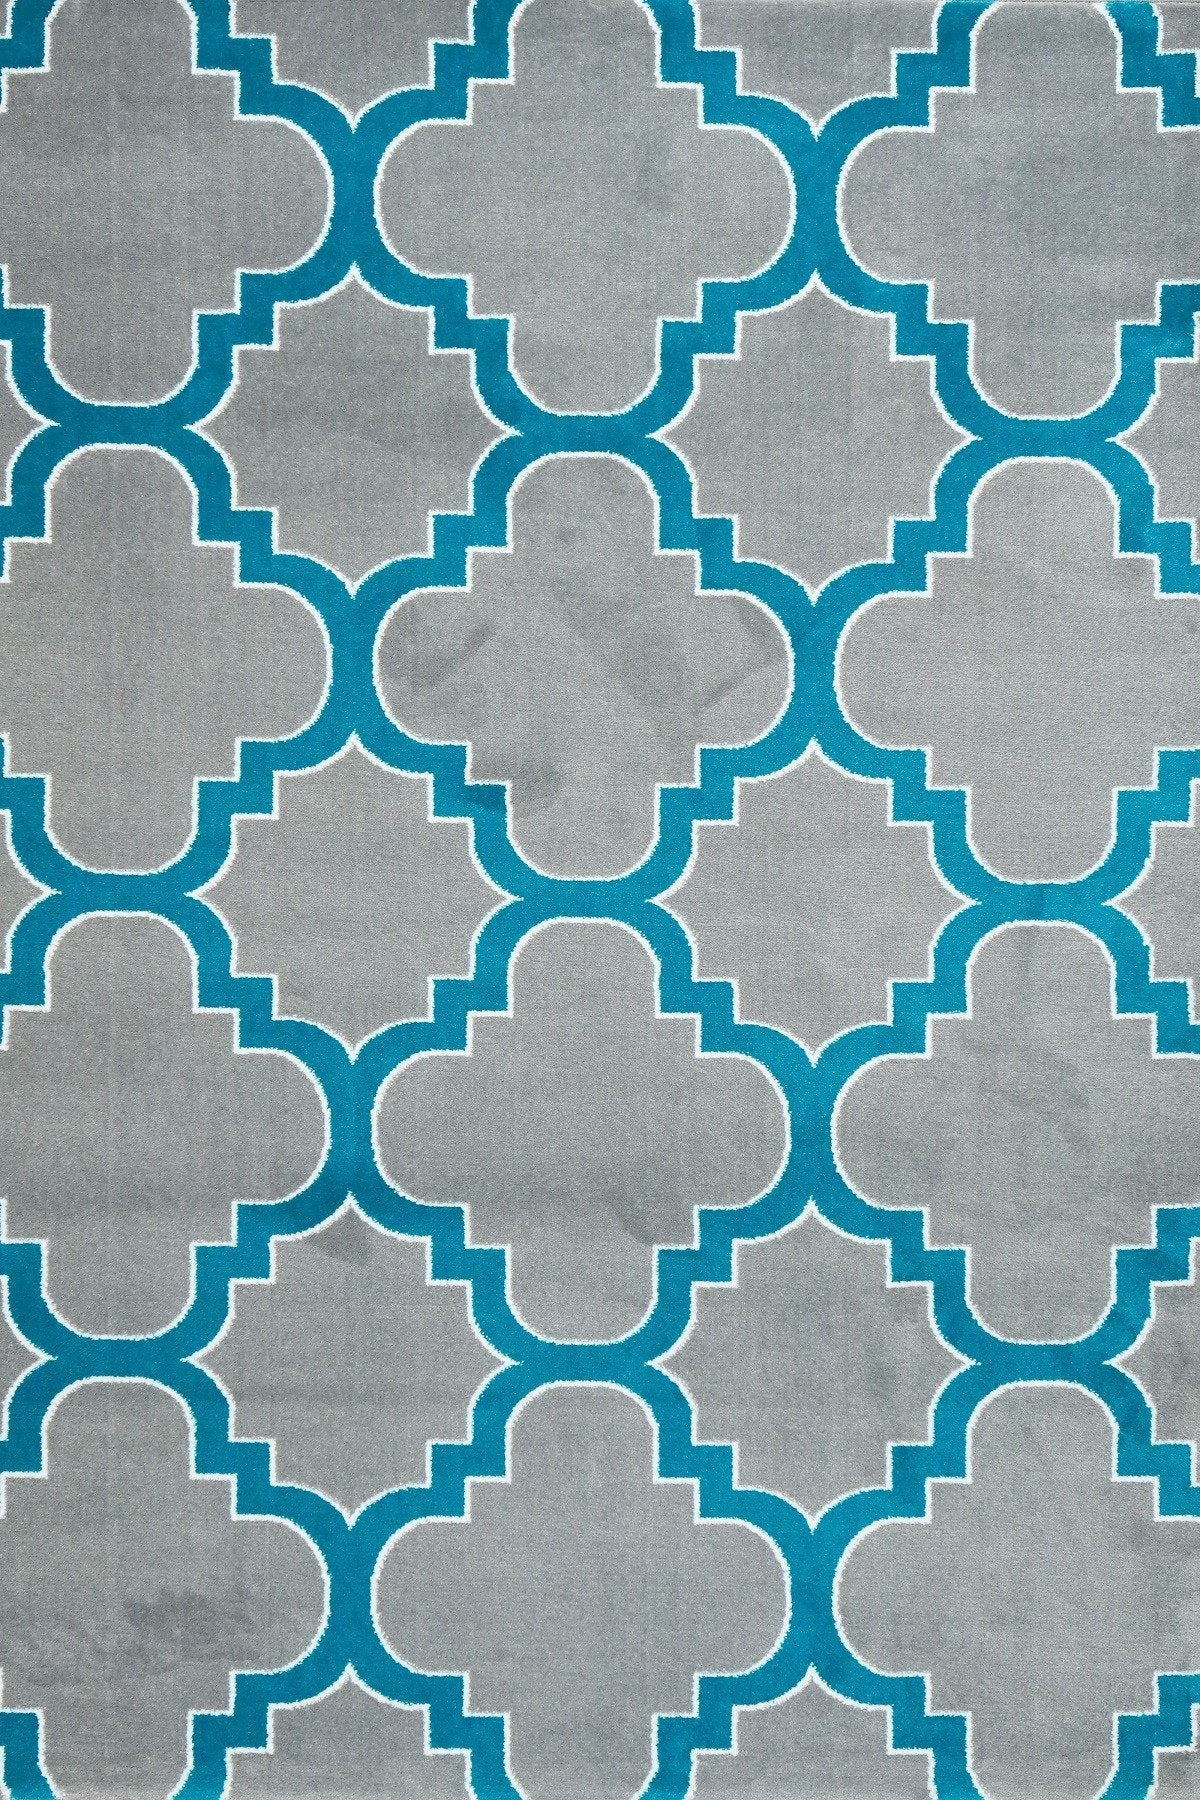 Gray Turquoise Moroccan Trellis Area Rugs ...